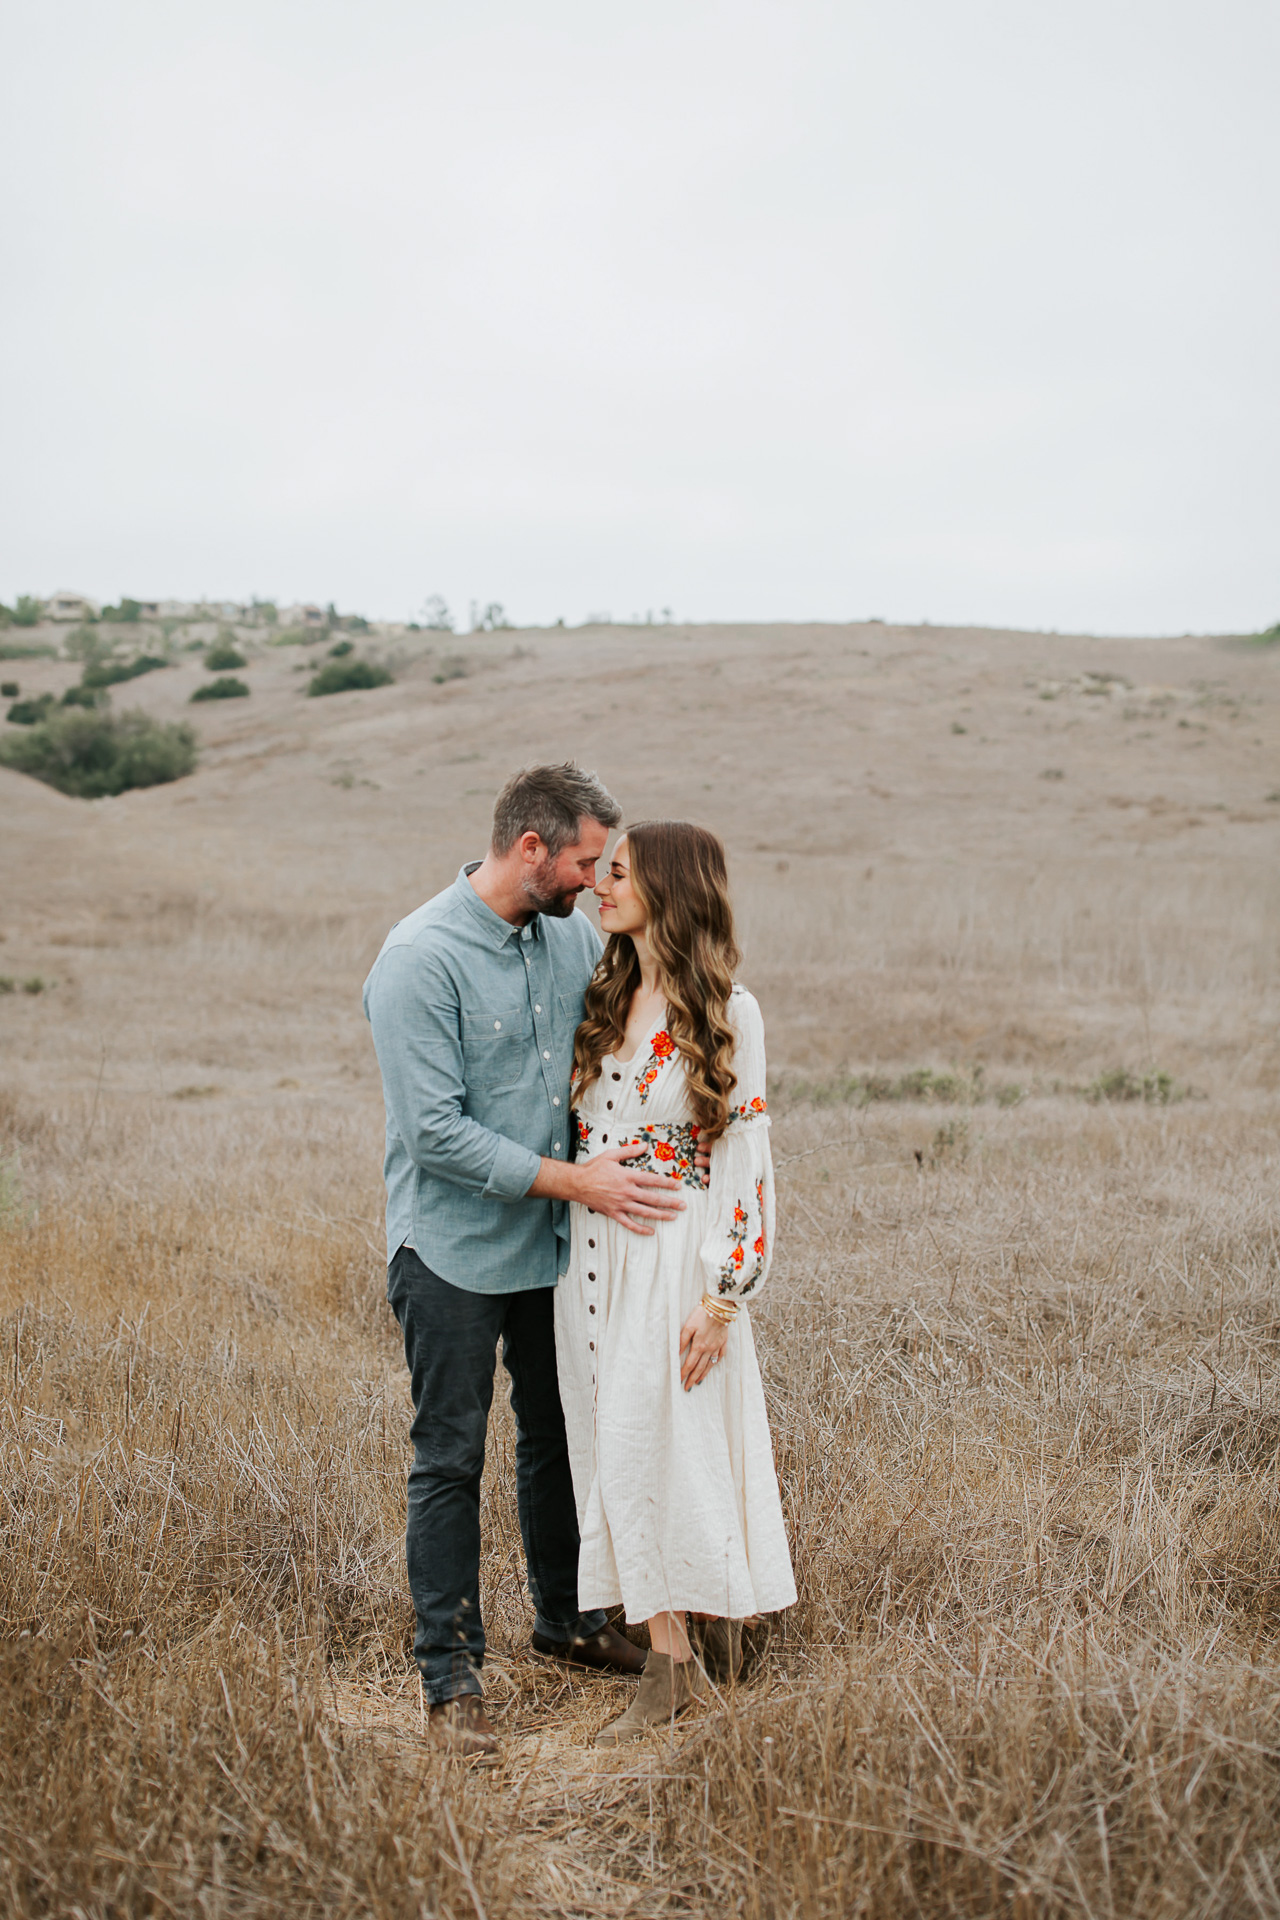 A maternity photoshoot in the fields. | M Loves M @marmar